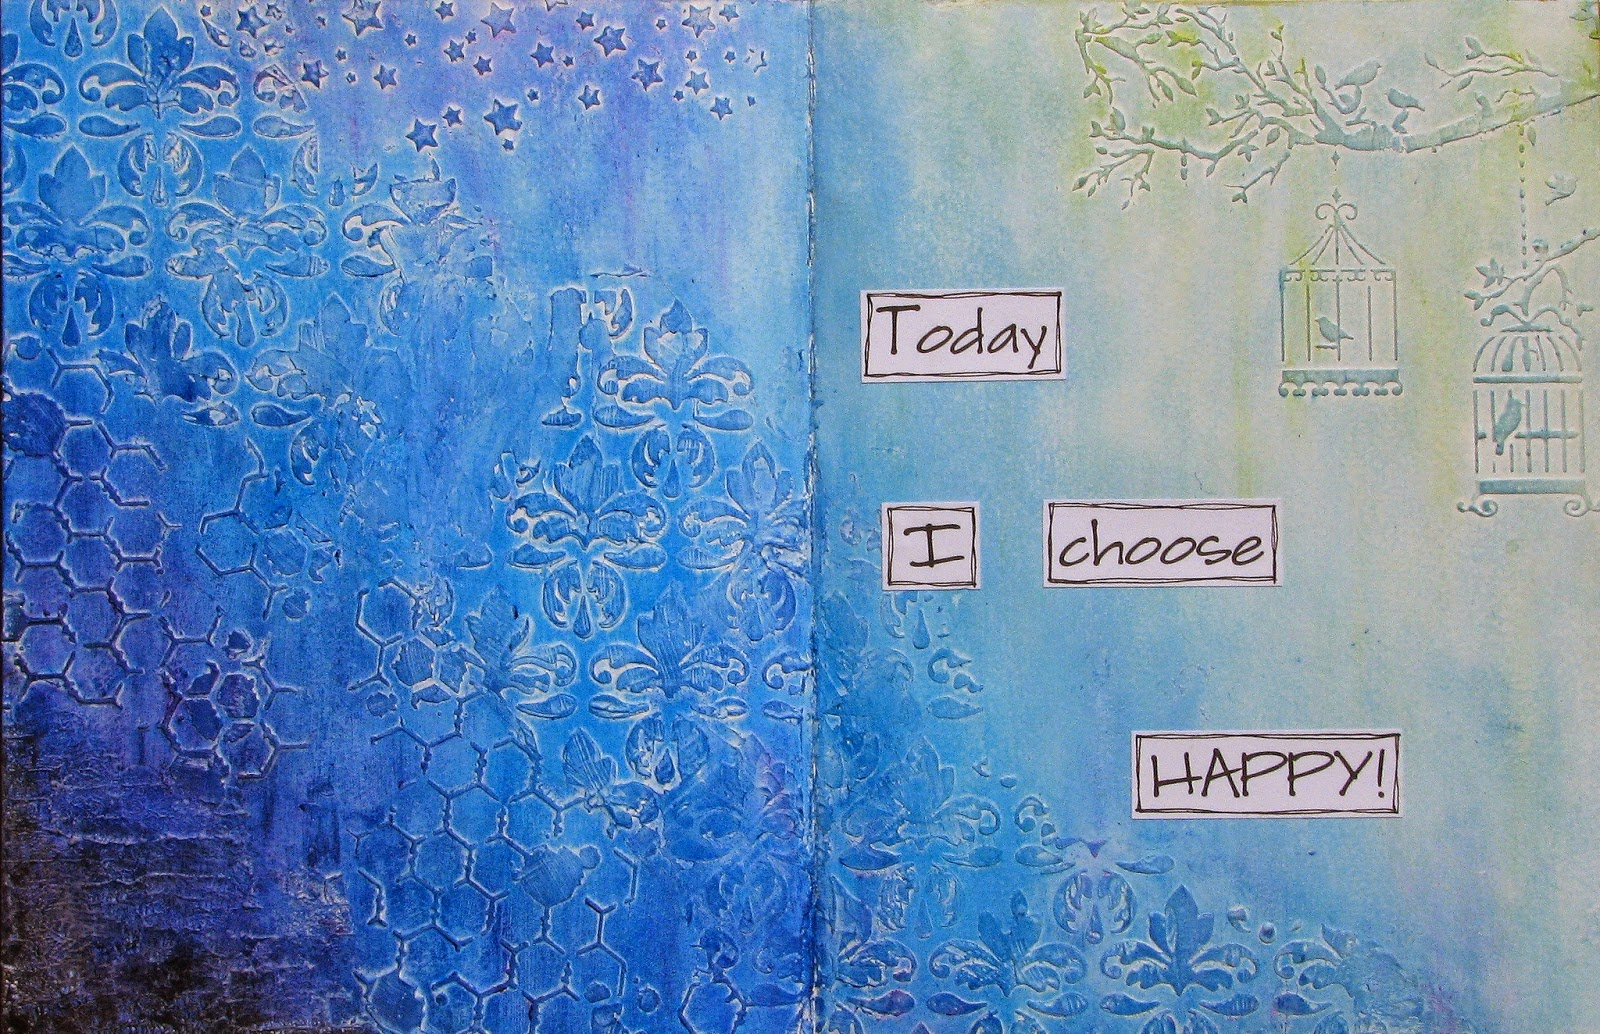 Scrap Savvy Creations: Having the Freedom to Choose - Art Journal Page